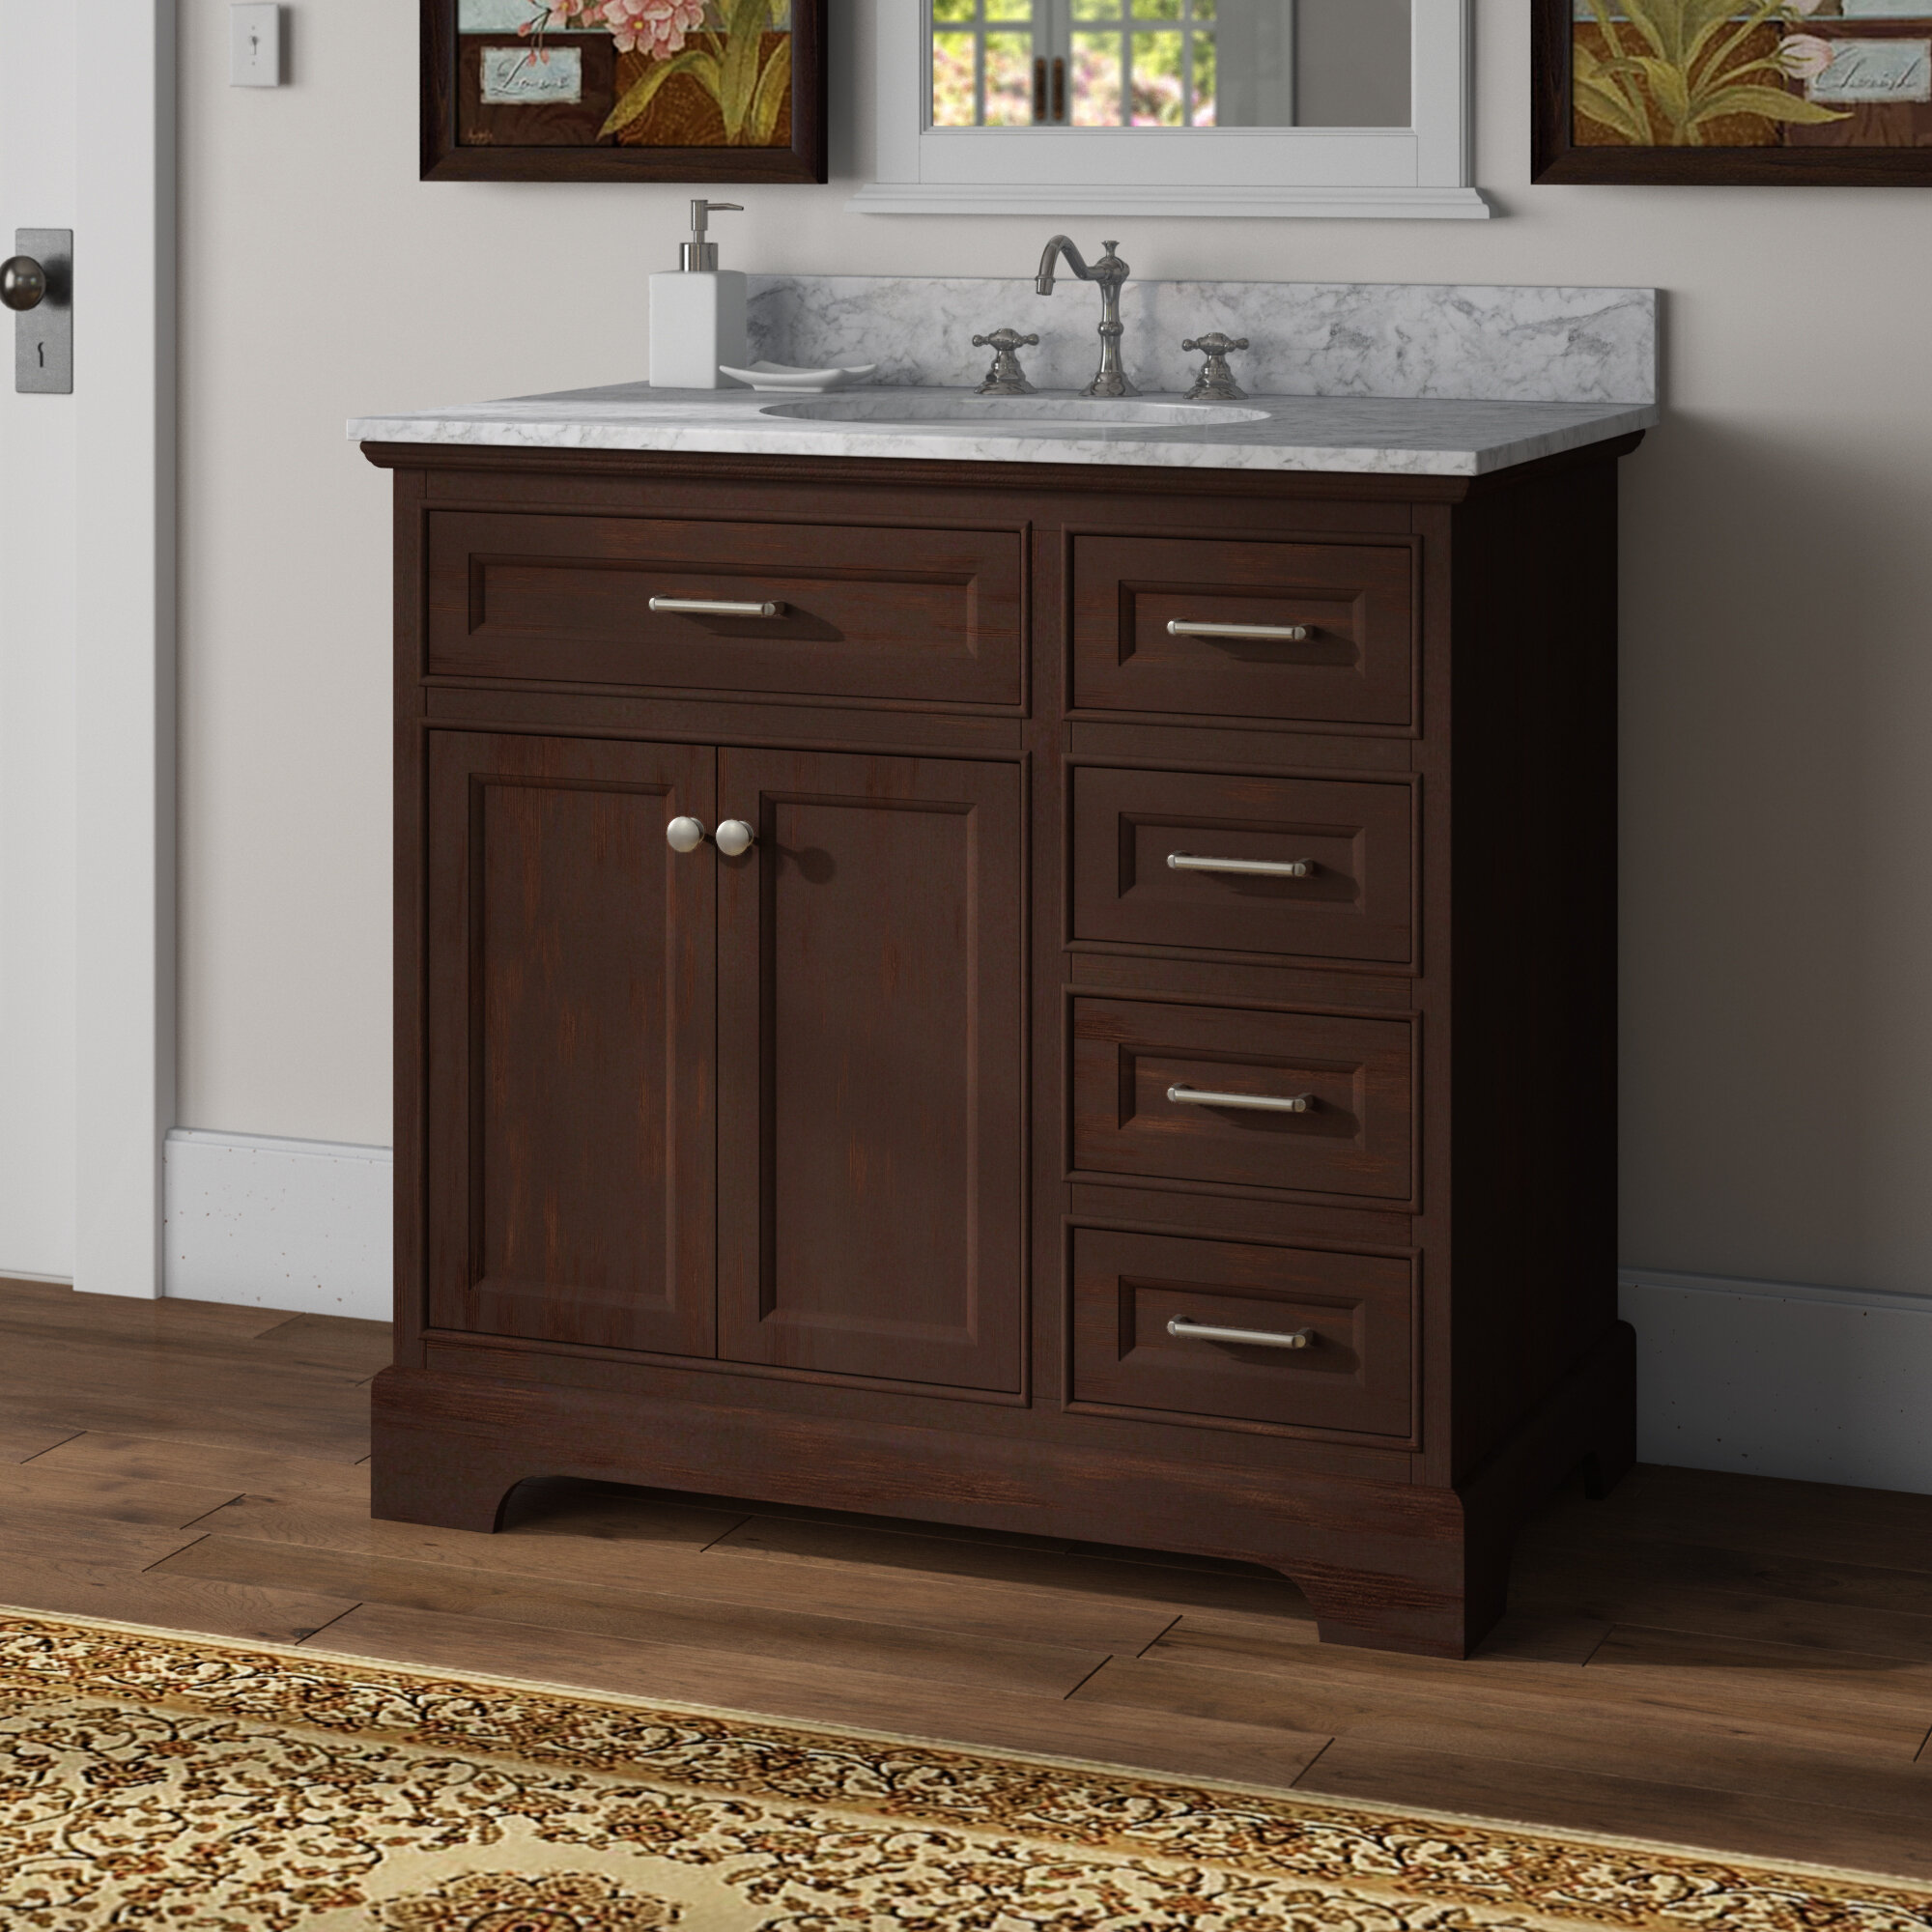 Kingon 36 Single Bathroom Vanity Set